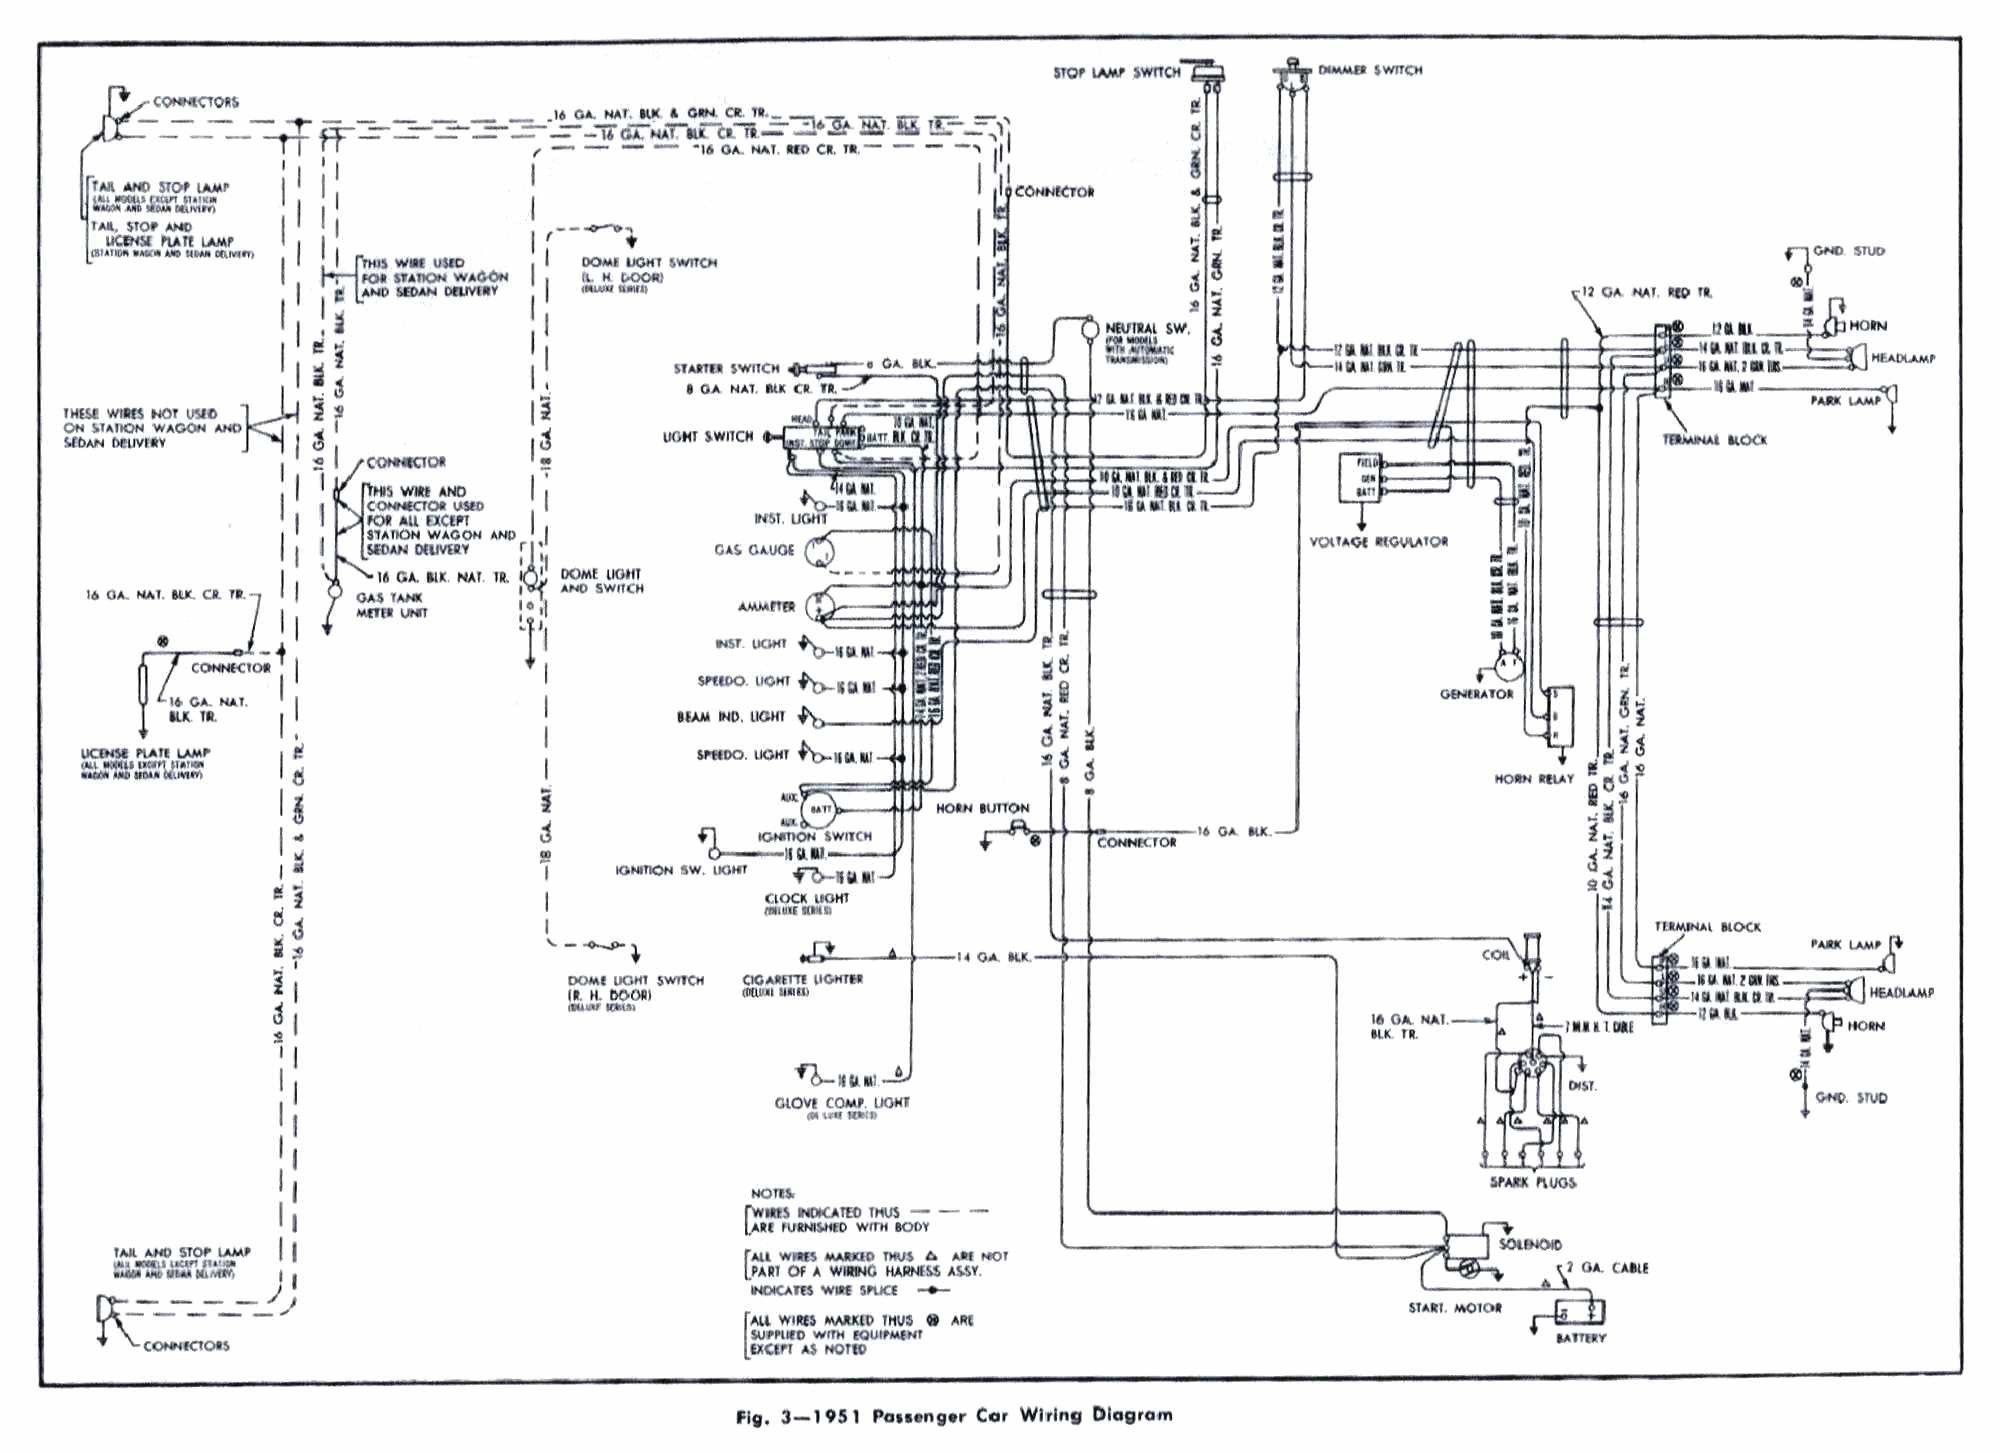 1981 Chevy Pickup Starter Wiring Diagram Library For Truck Unique 1977 Chevrolet Gift Electrical Of